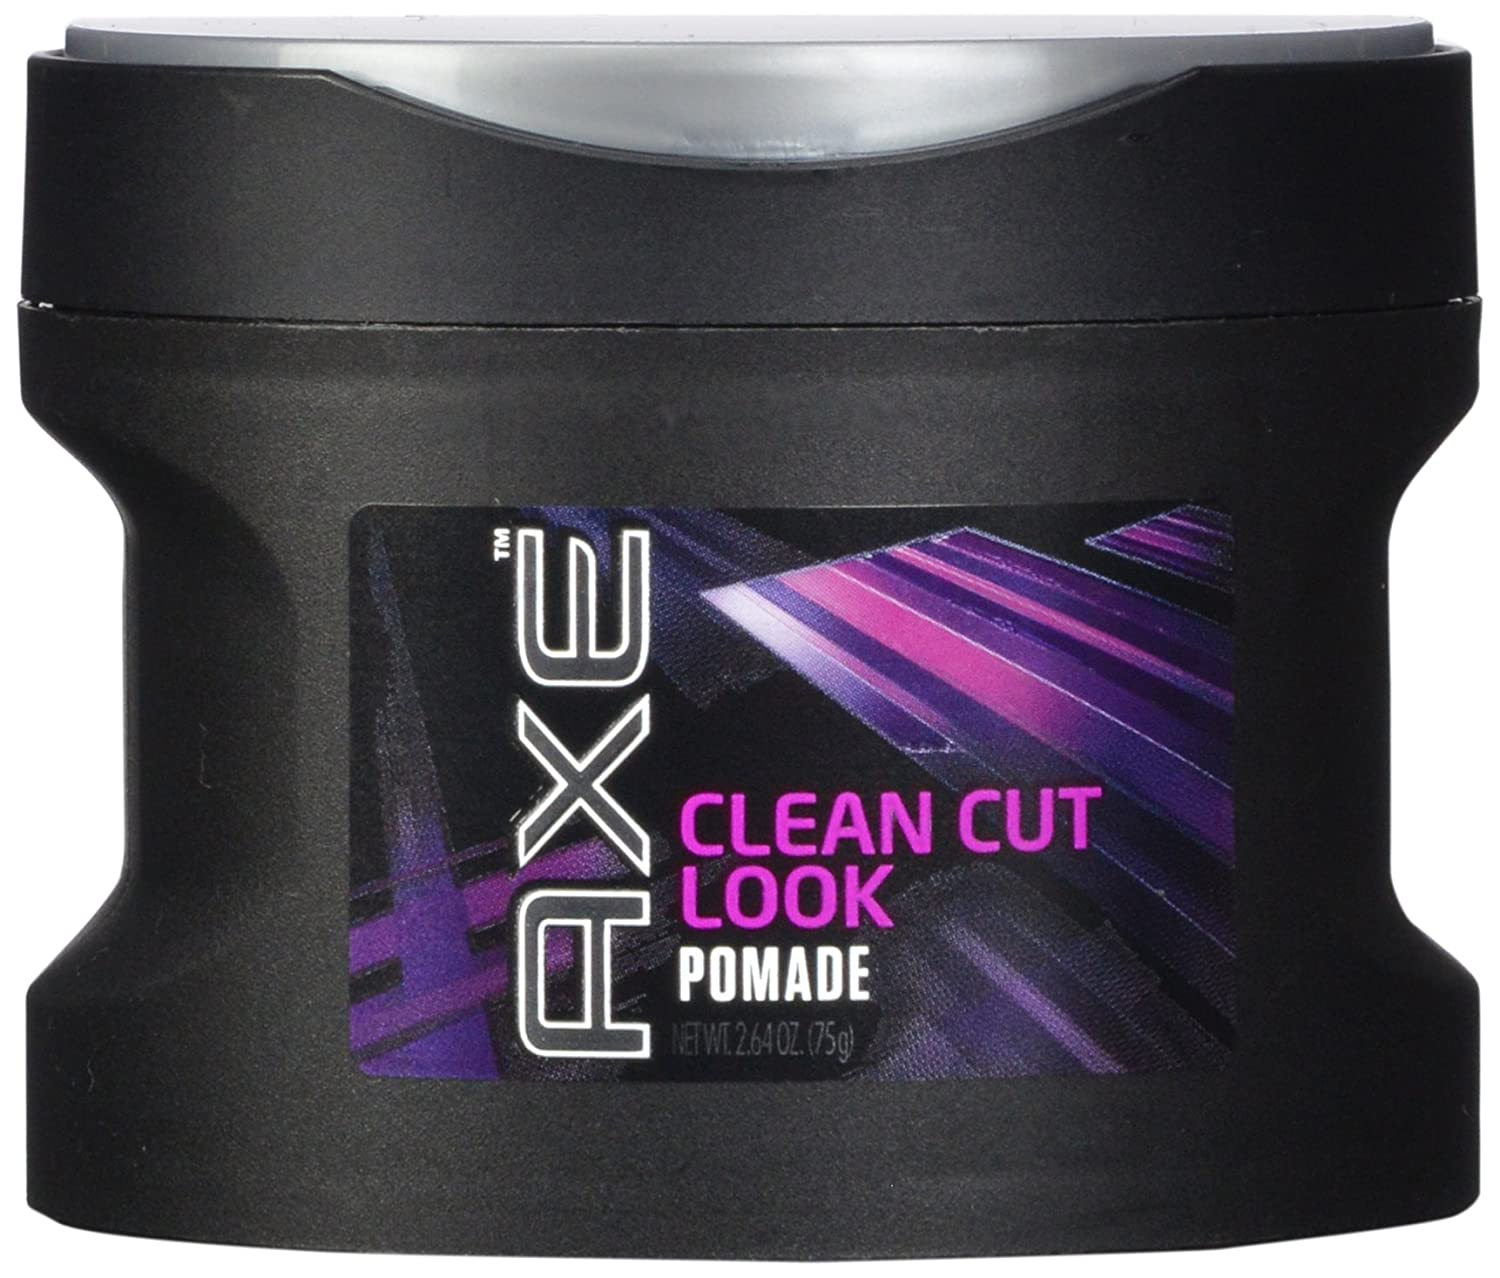 AXE-Pomade-Clean-Cut-Look-2-64-oz-Pack-of-3-